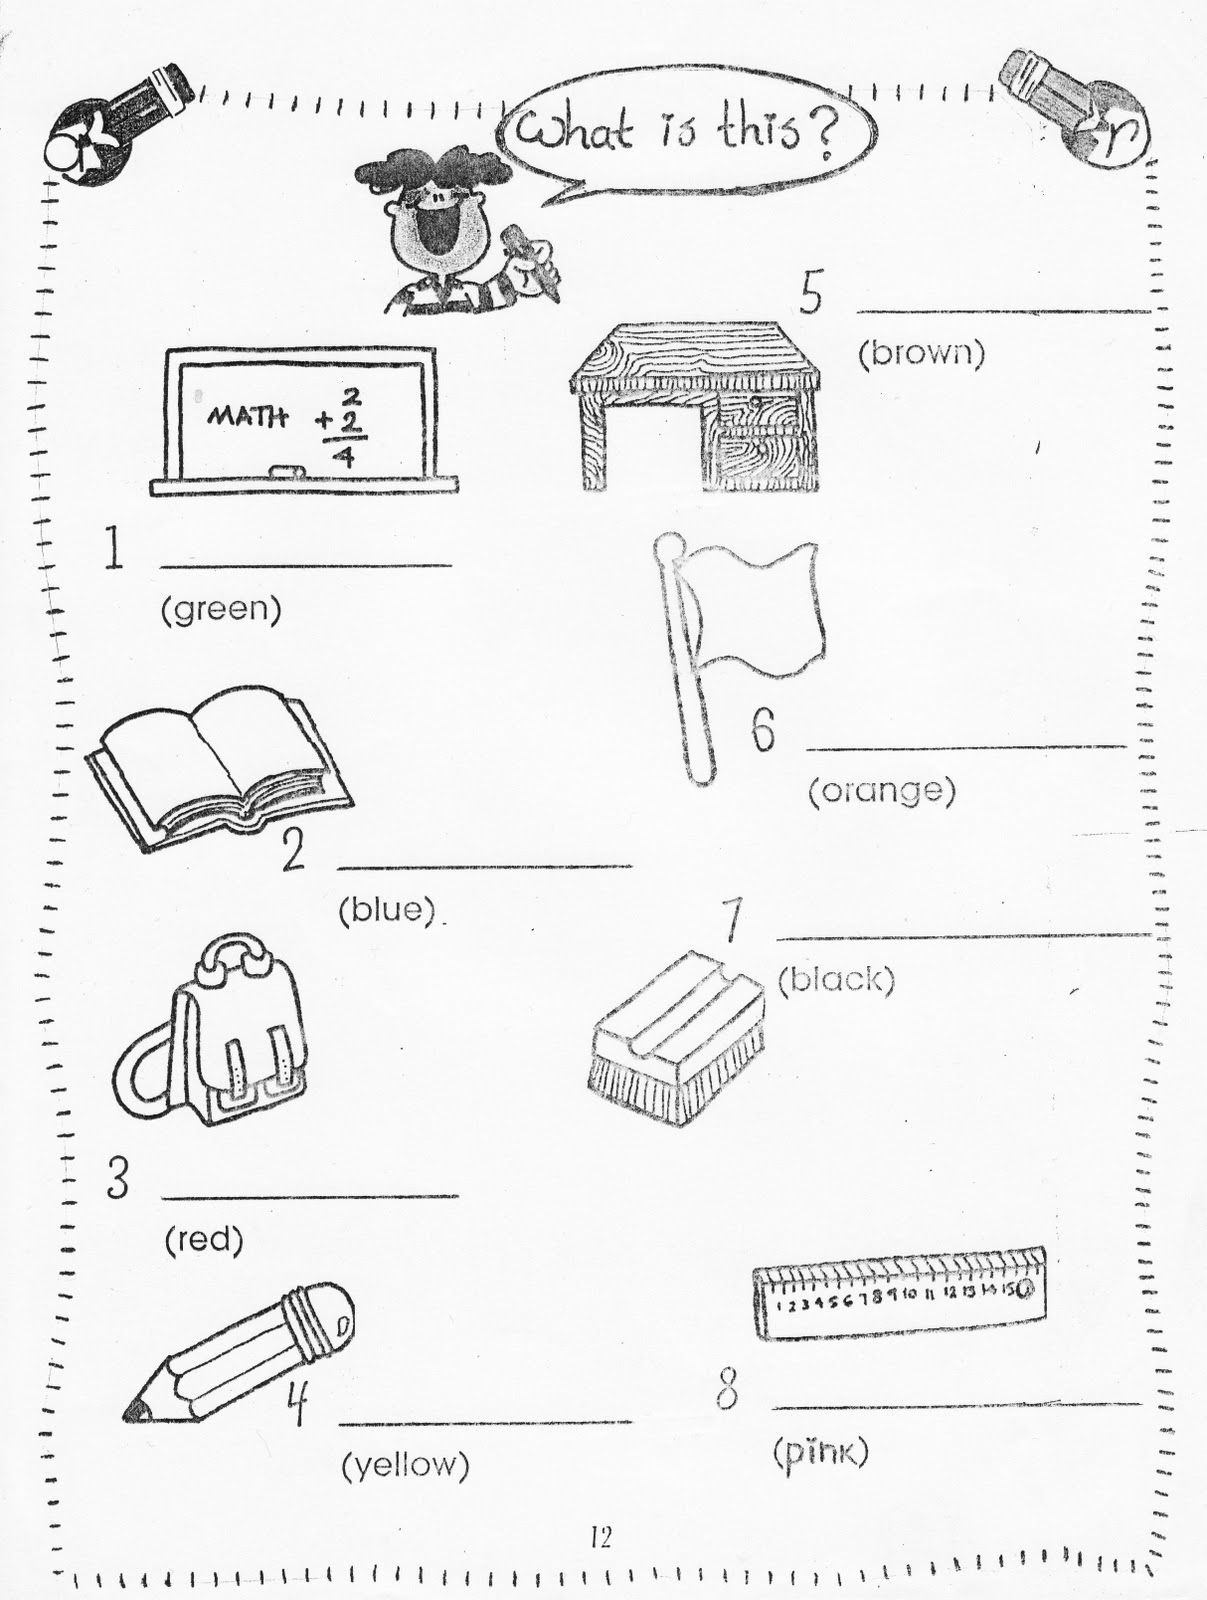 English Teacher O Prof De Francais Classroom Objects